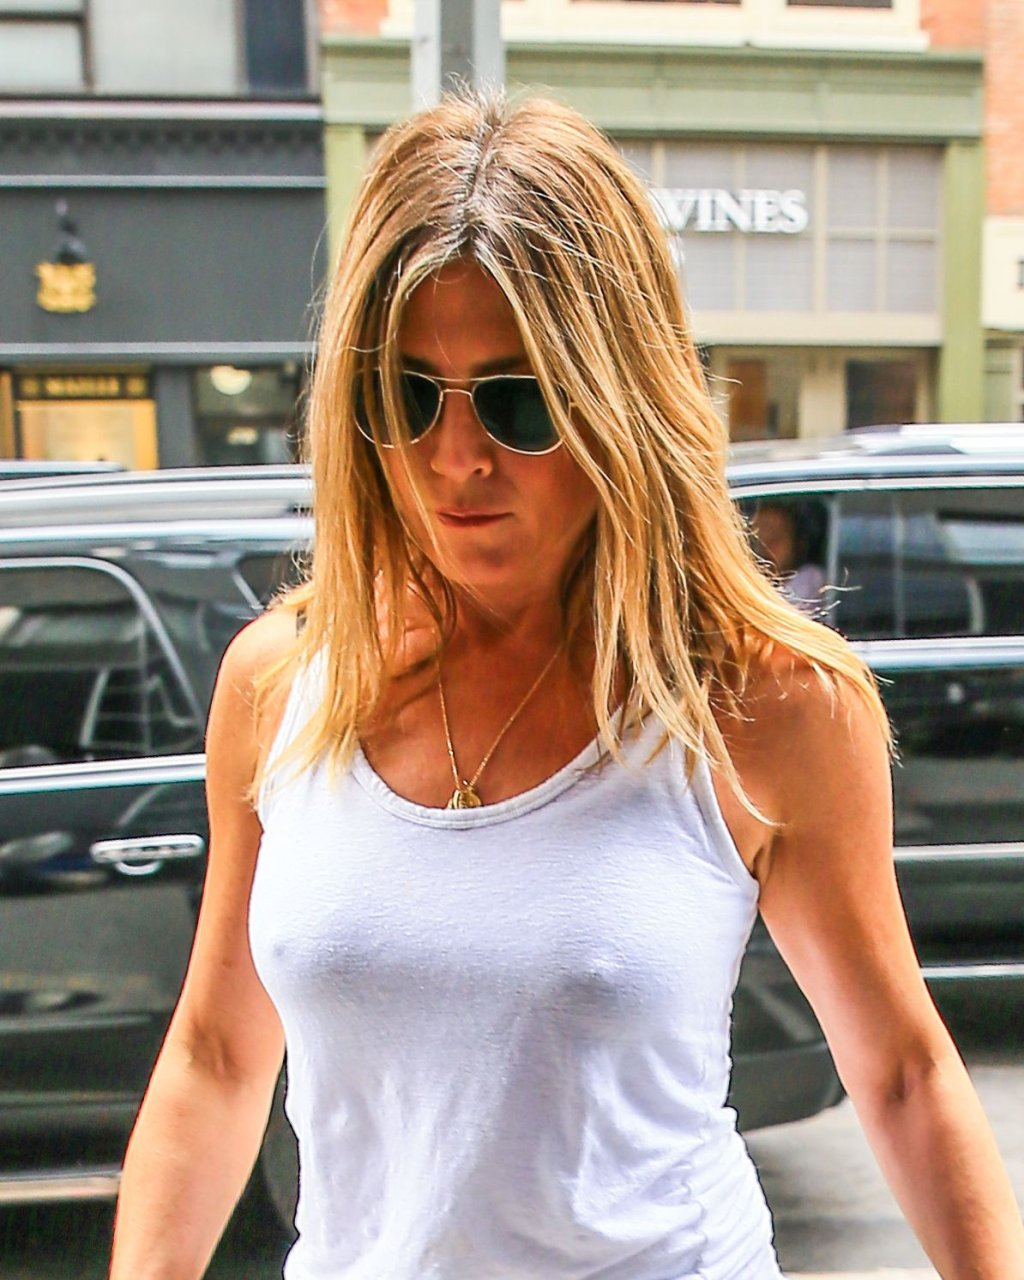 aniston gallery Jennifer tits